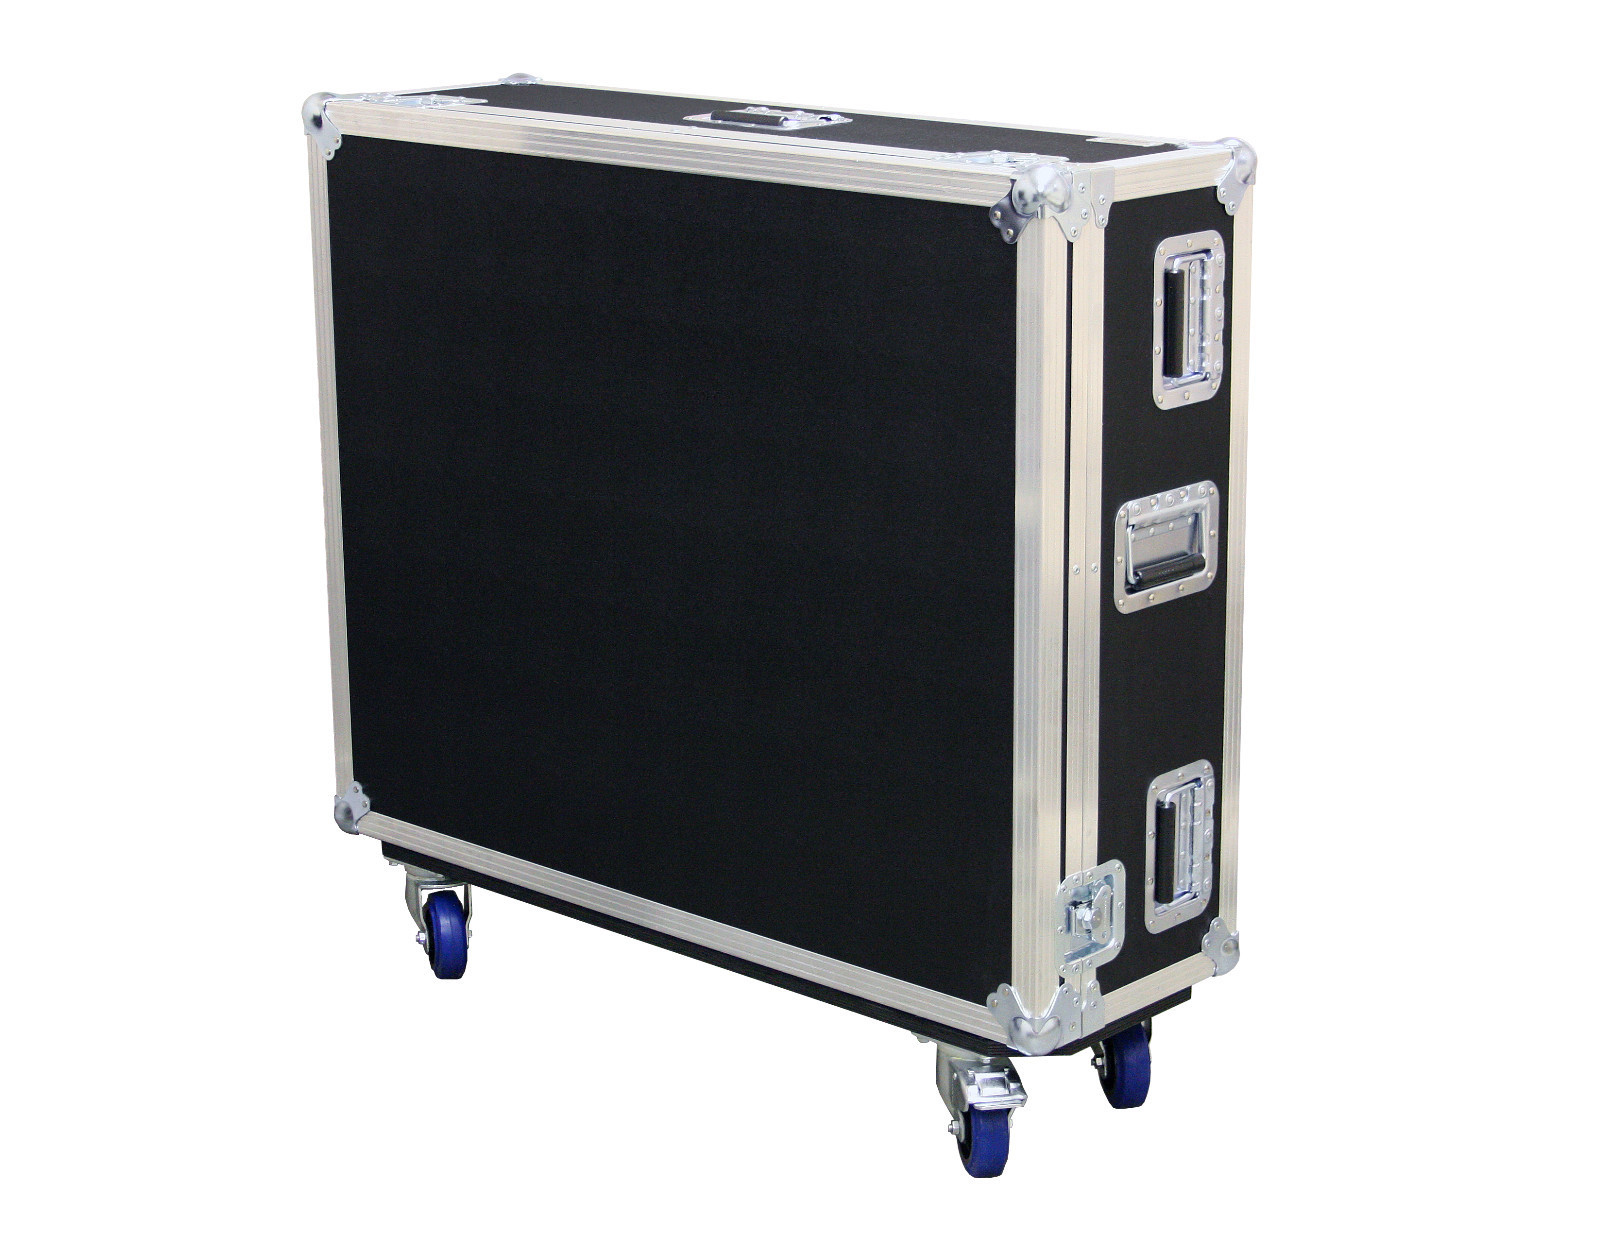 Ata Safecase For Si Expression 3 W Dh Whls in addition Ata Safecase For Si Expression 3 further Ata Safecase For Si Performer 3 W Dh additionally Ata Safecase For Si Performer 3 W Dh Whls besides  on ata safecase for presonus 16 4 2 w dh